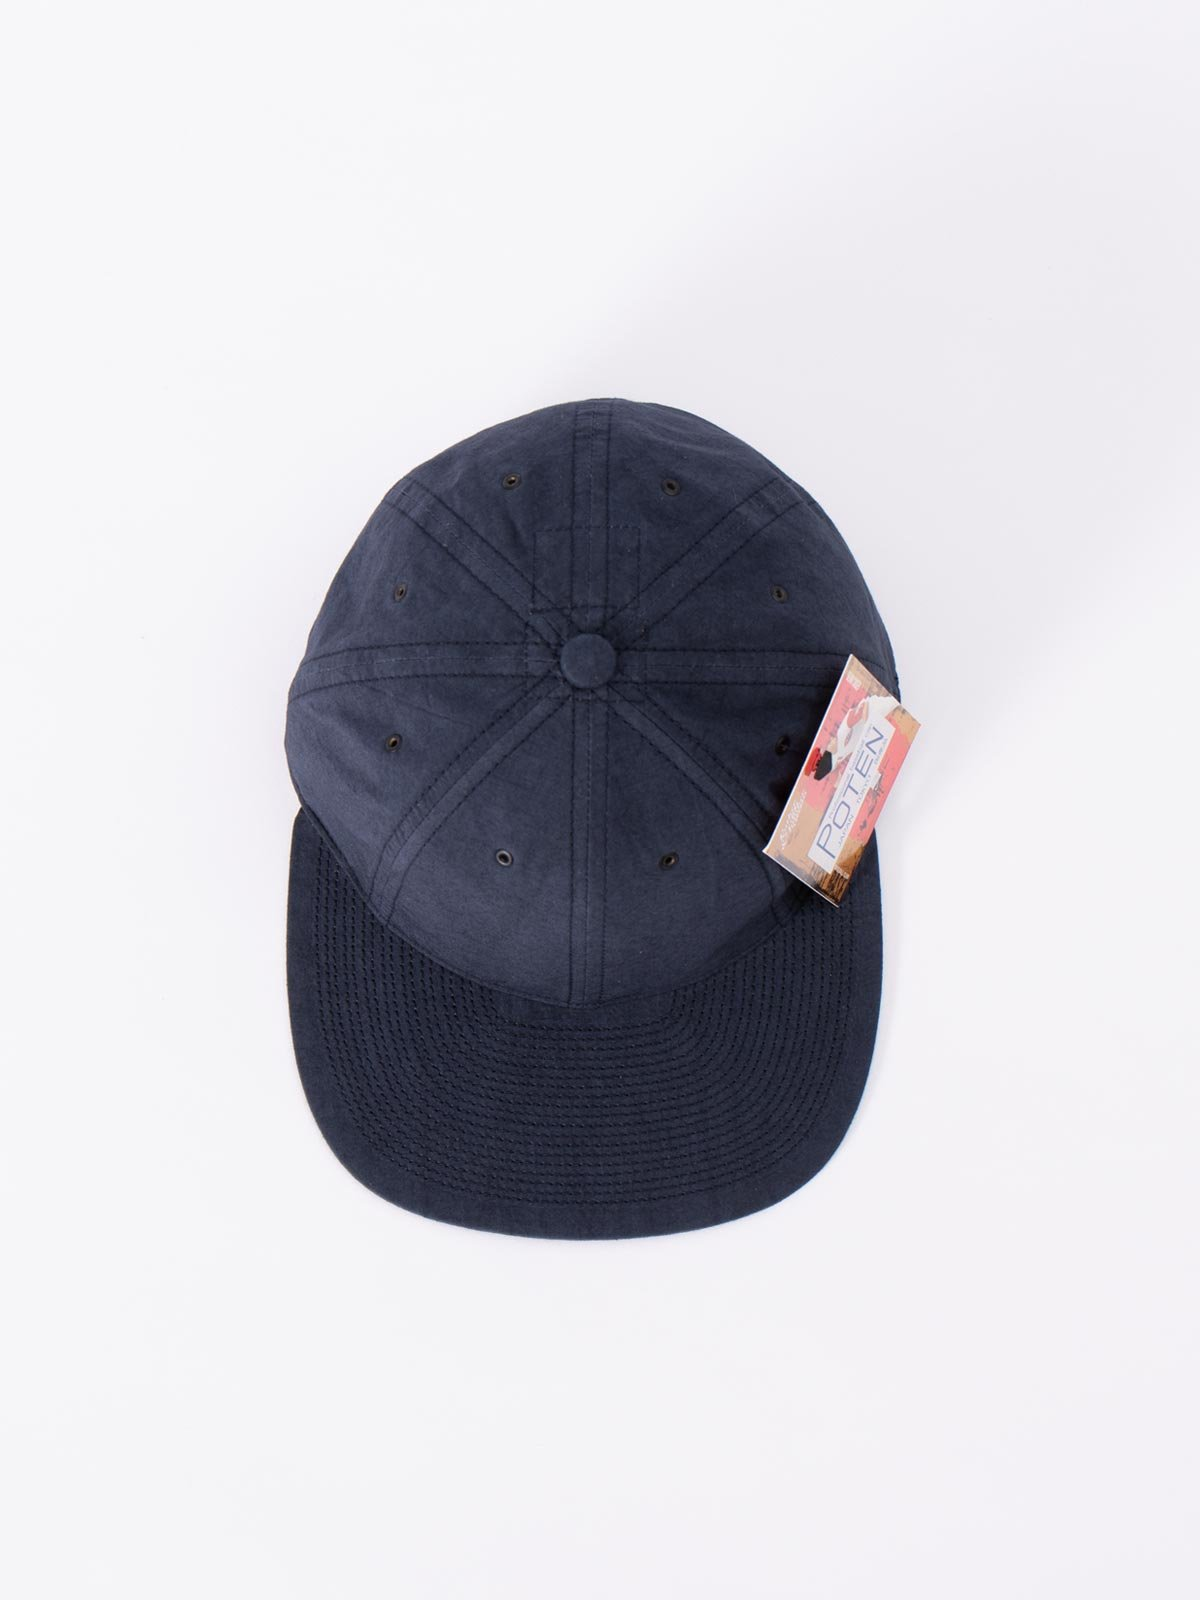 NAVY SPECIAL DYED COTTON / LINEN CAP - Image 3